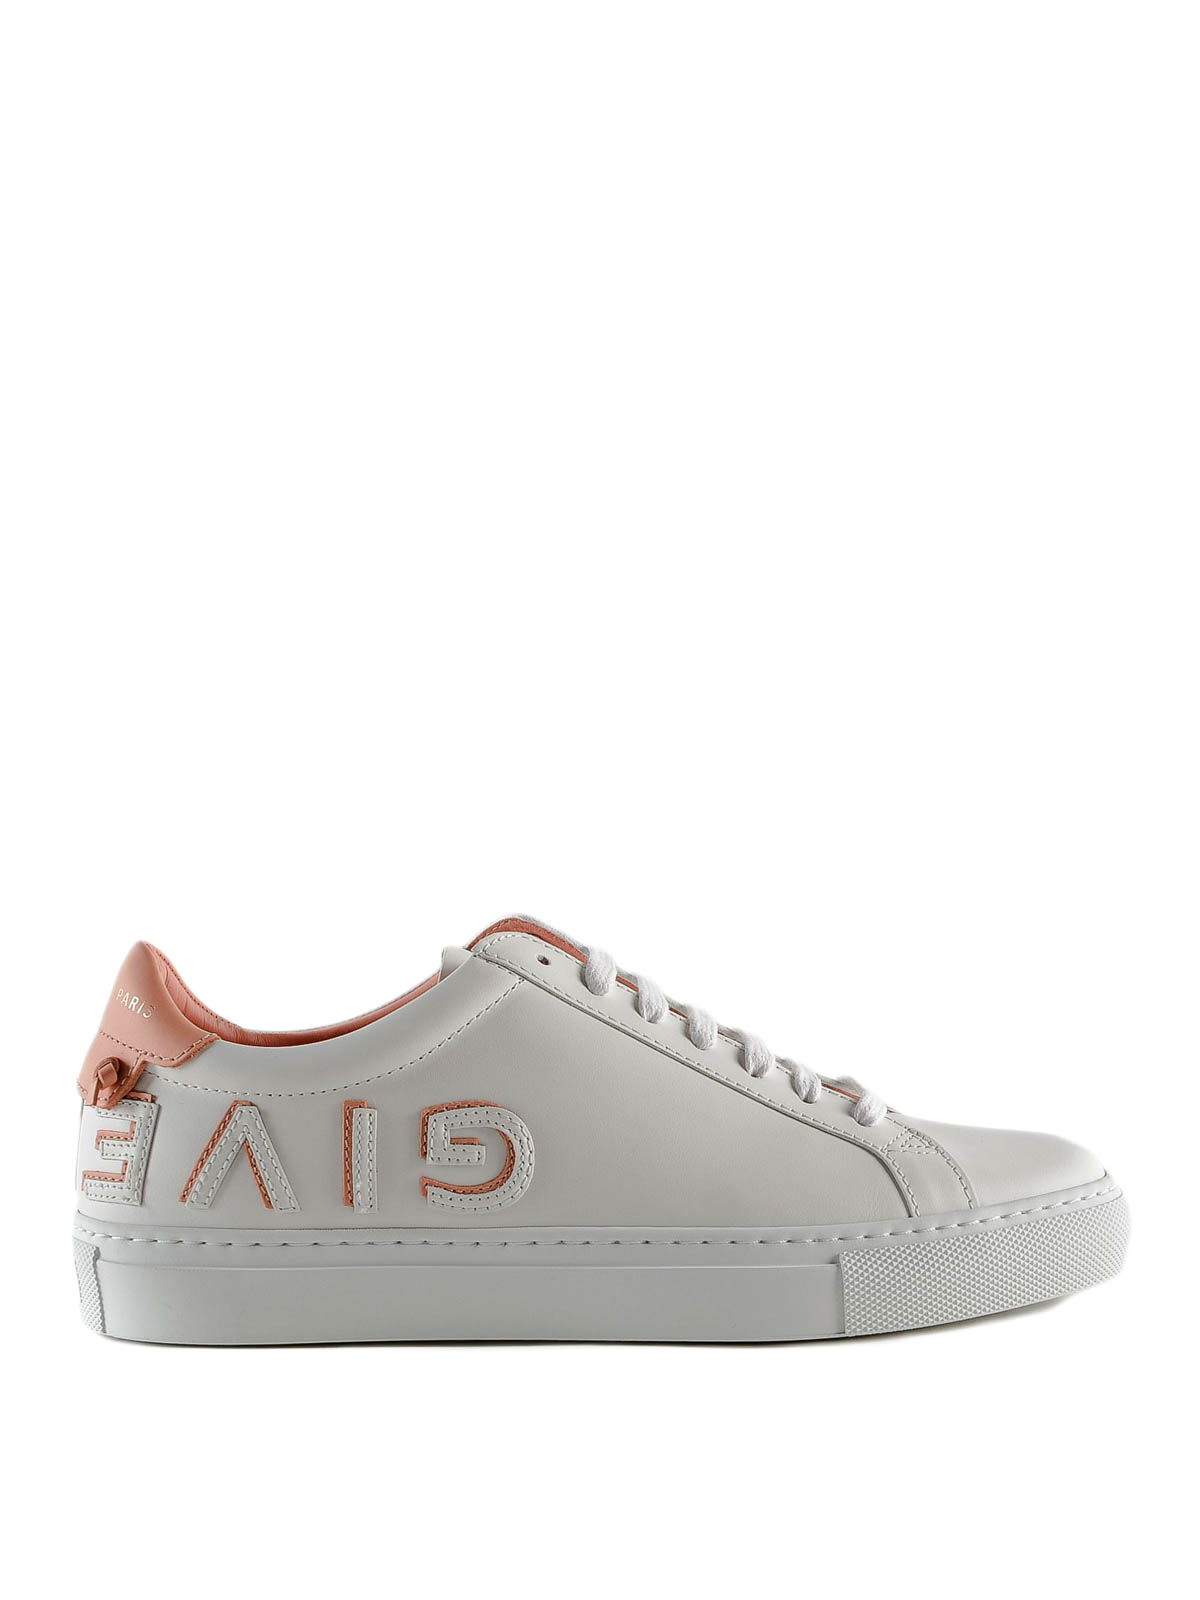 Urban Trainers Sneakers Street Logo Givenchy Reverse XuwTOZilPk